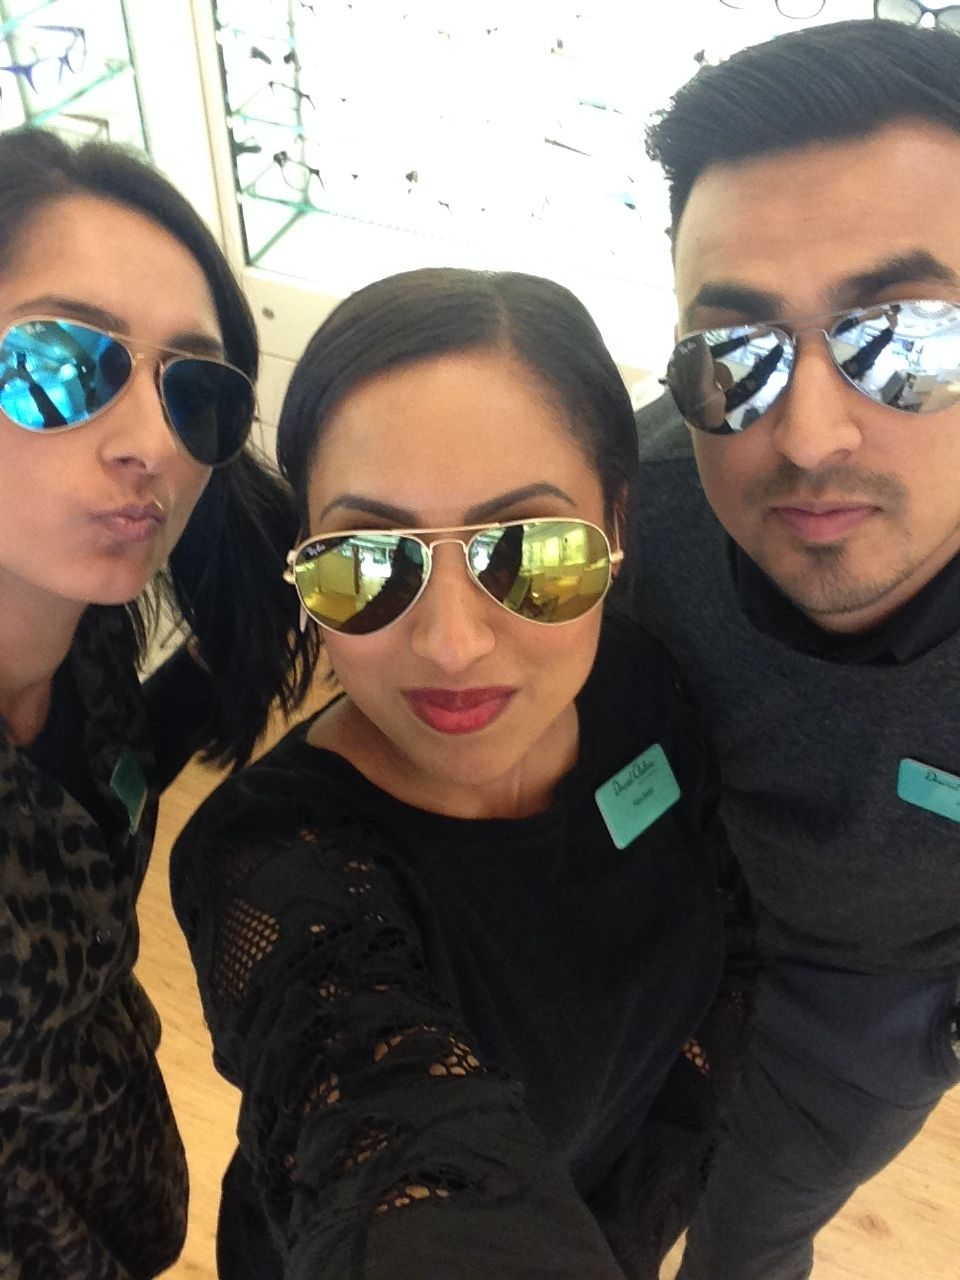 a0f78942ac Kensington team wearing Ray-Ban Mirrored lenses! Brand Campaign